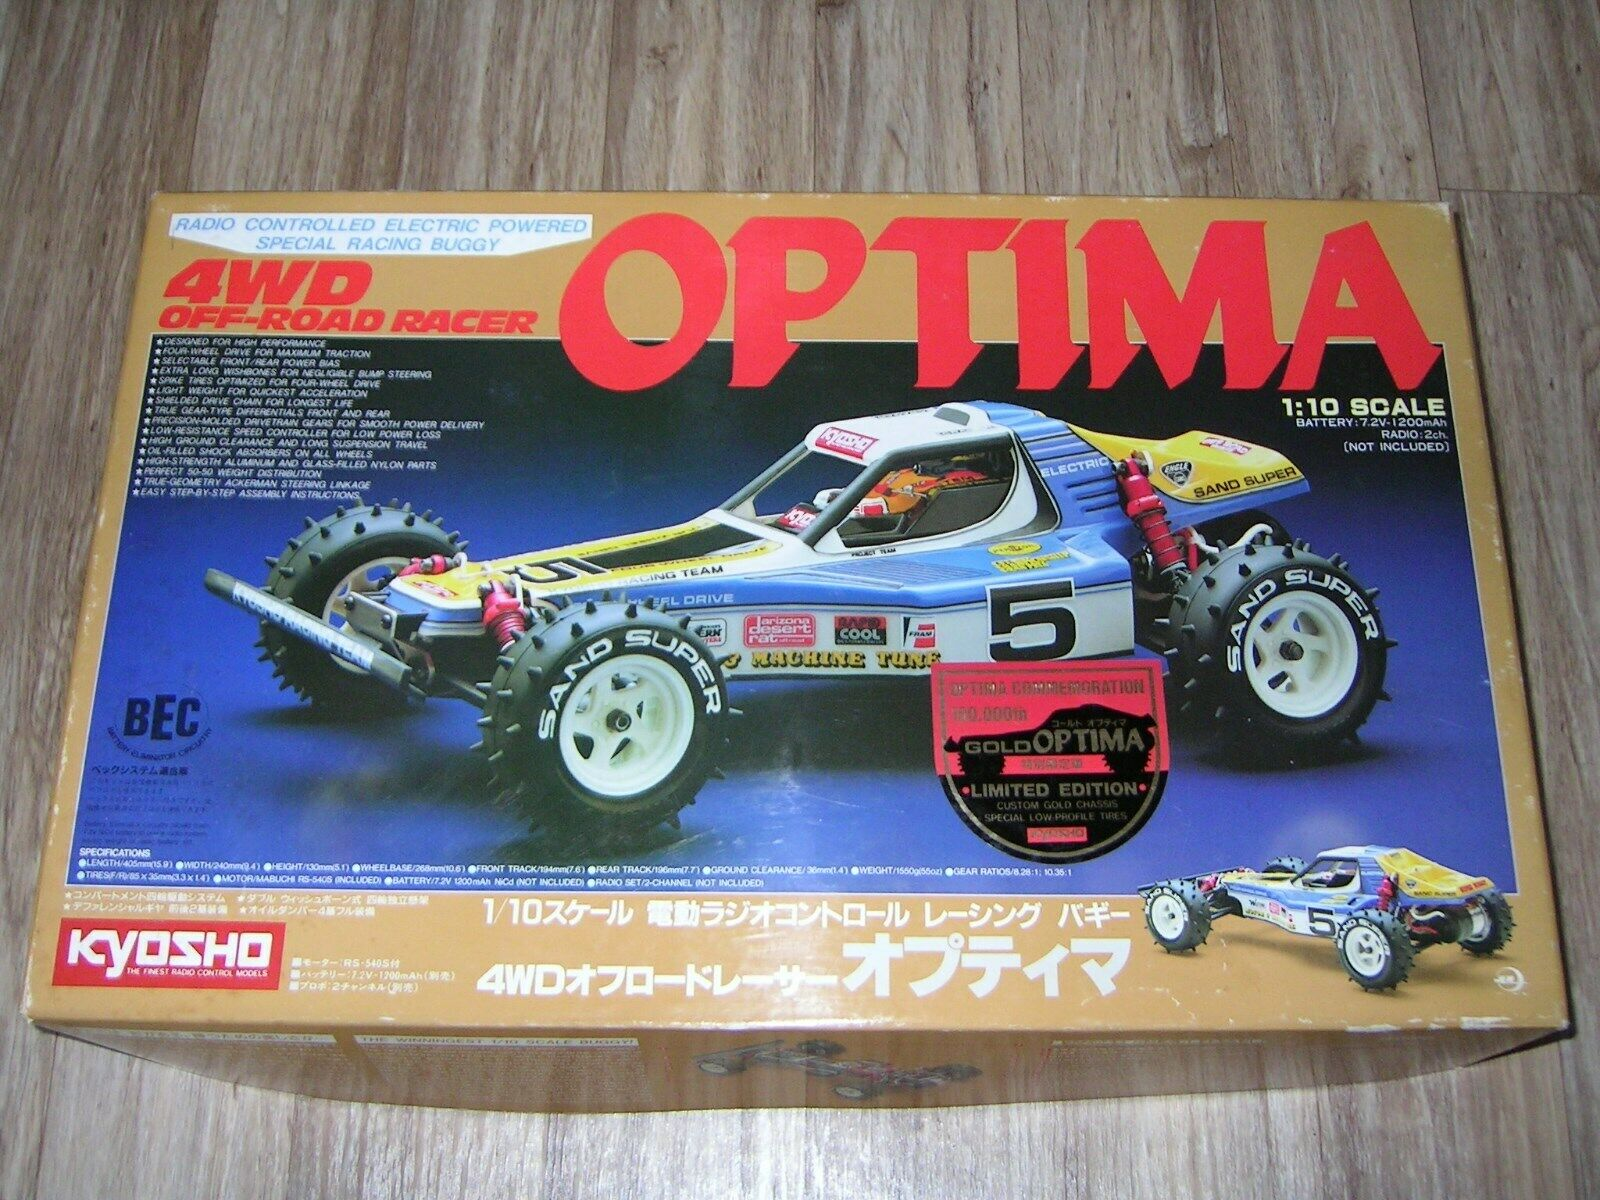 Kyosho 1 10 optima gold edition + extras extras extras 8af441